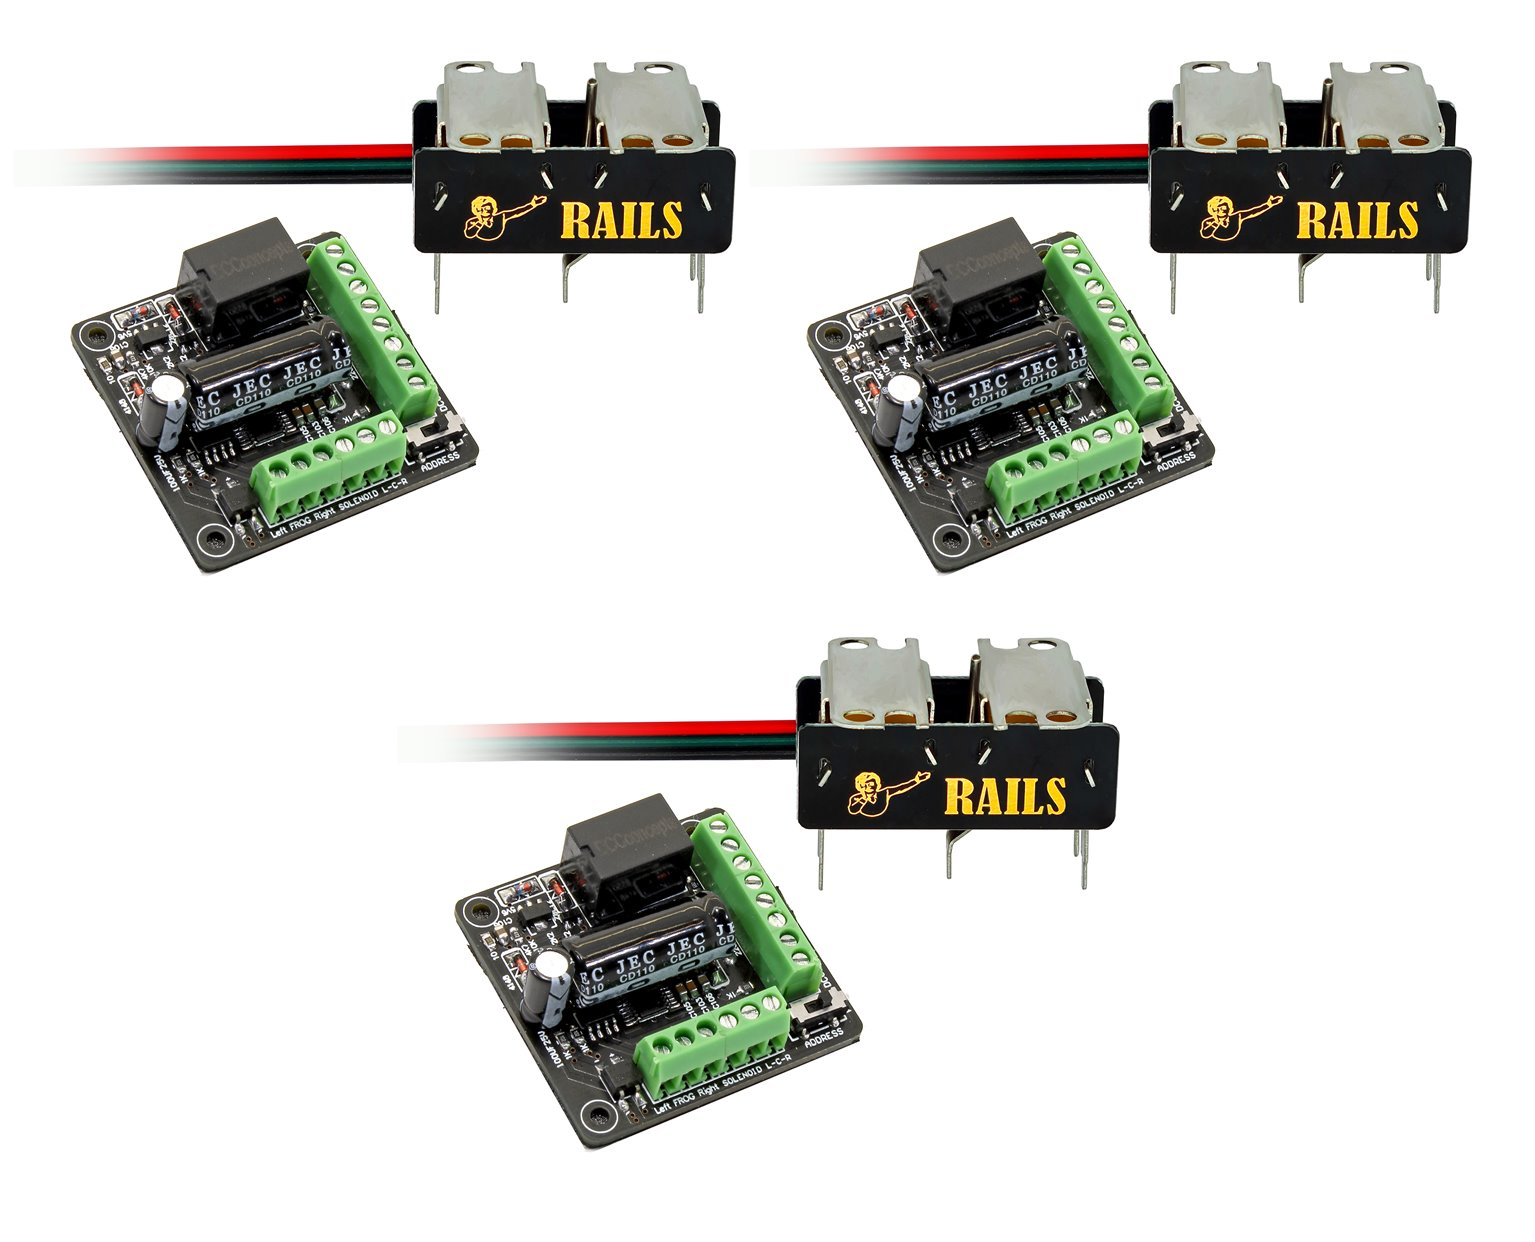 Rails Connect High Efficiency Under Board Stainless Steel DIGITAL Point Motor (3 Pack)